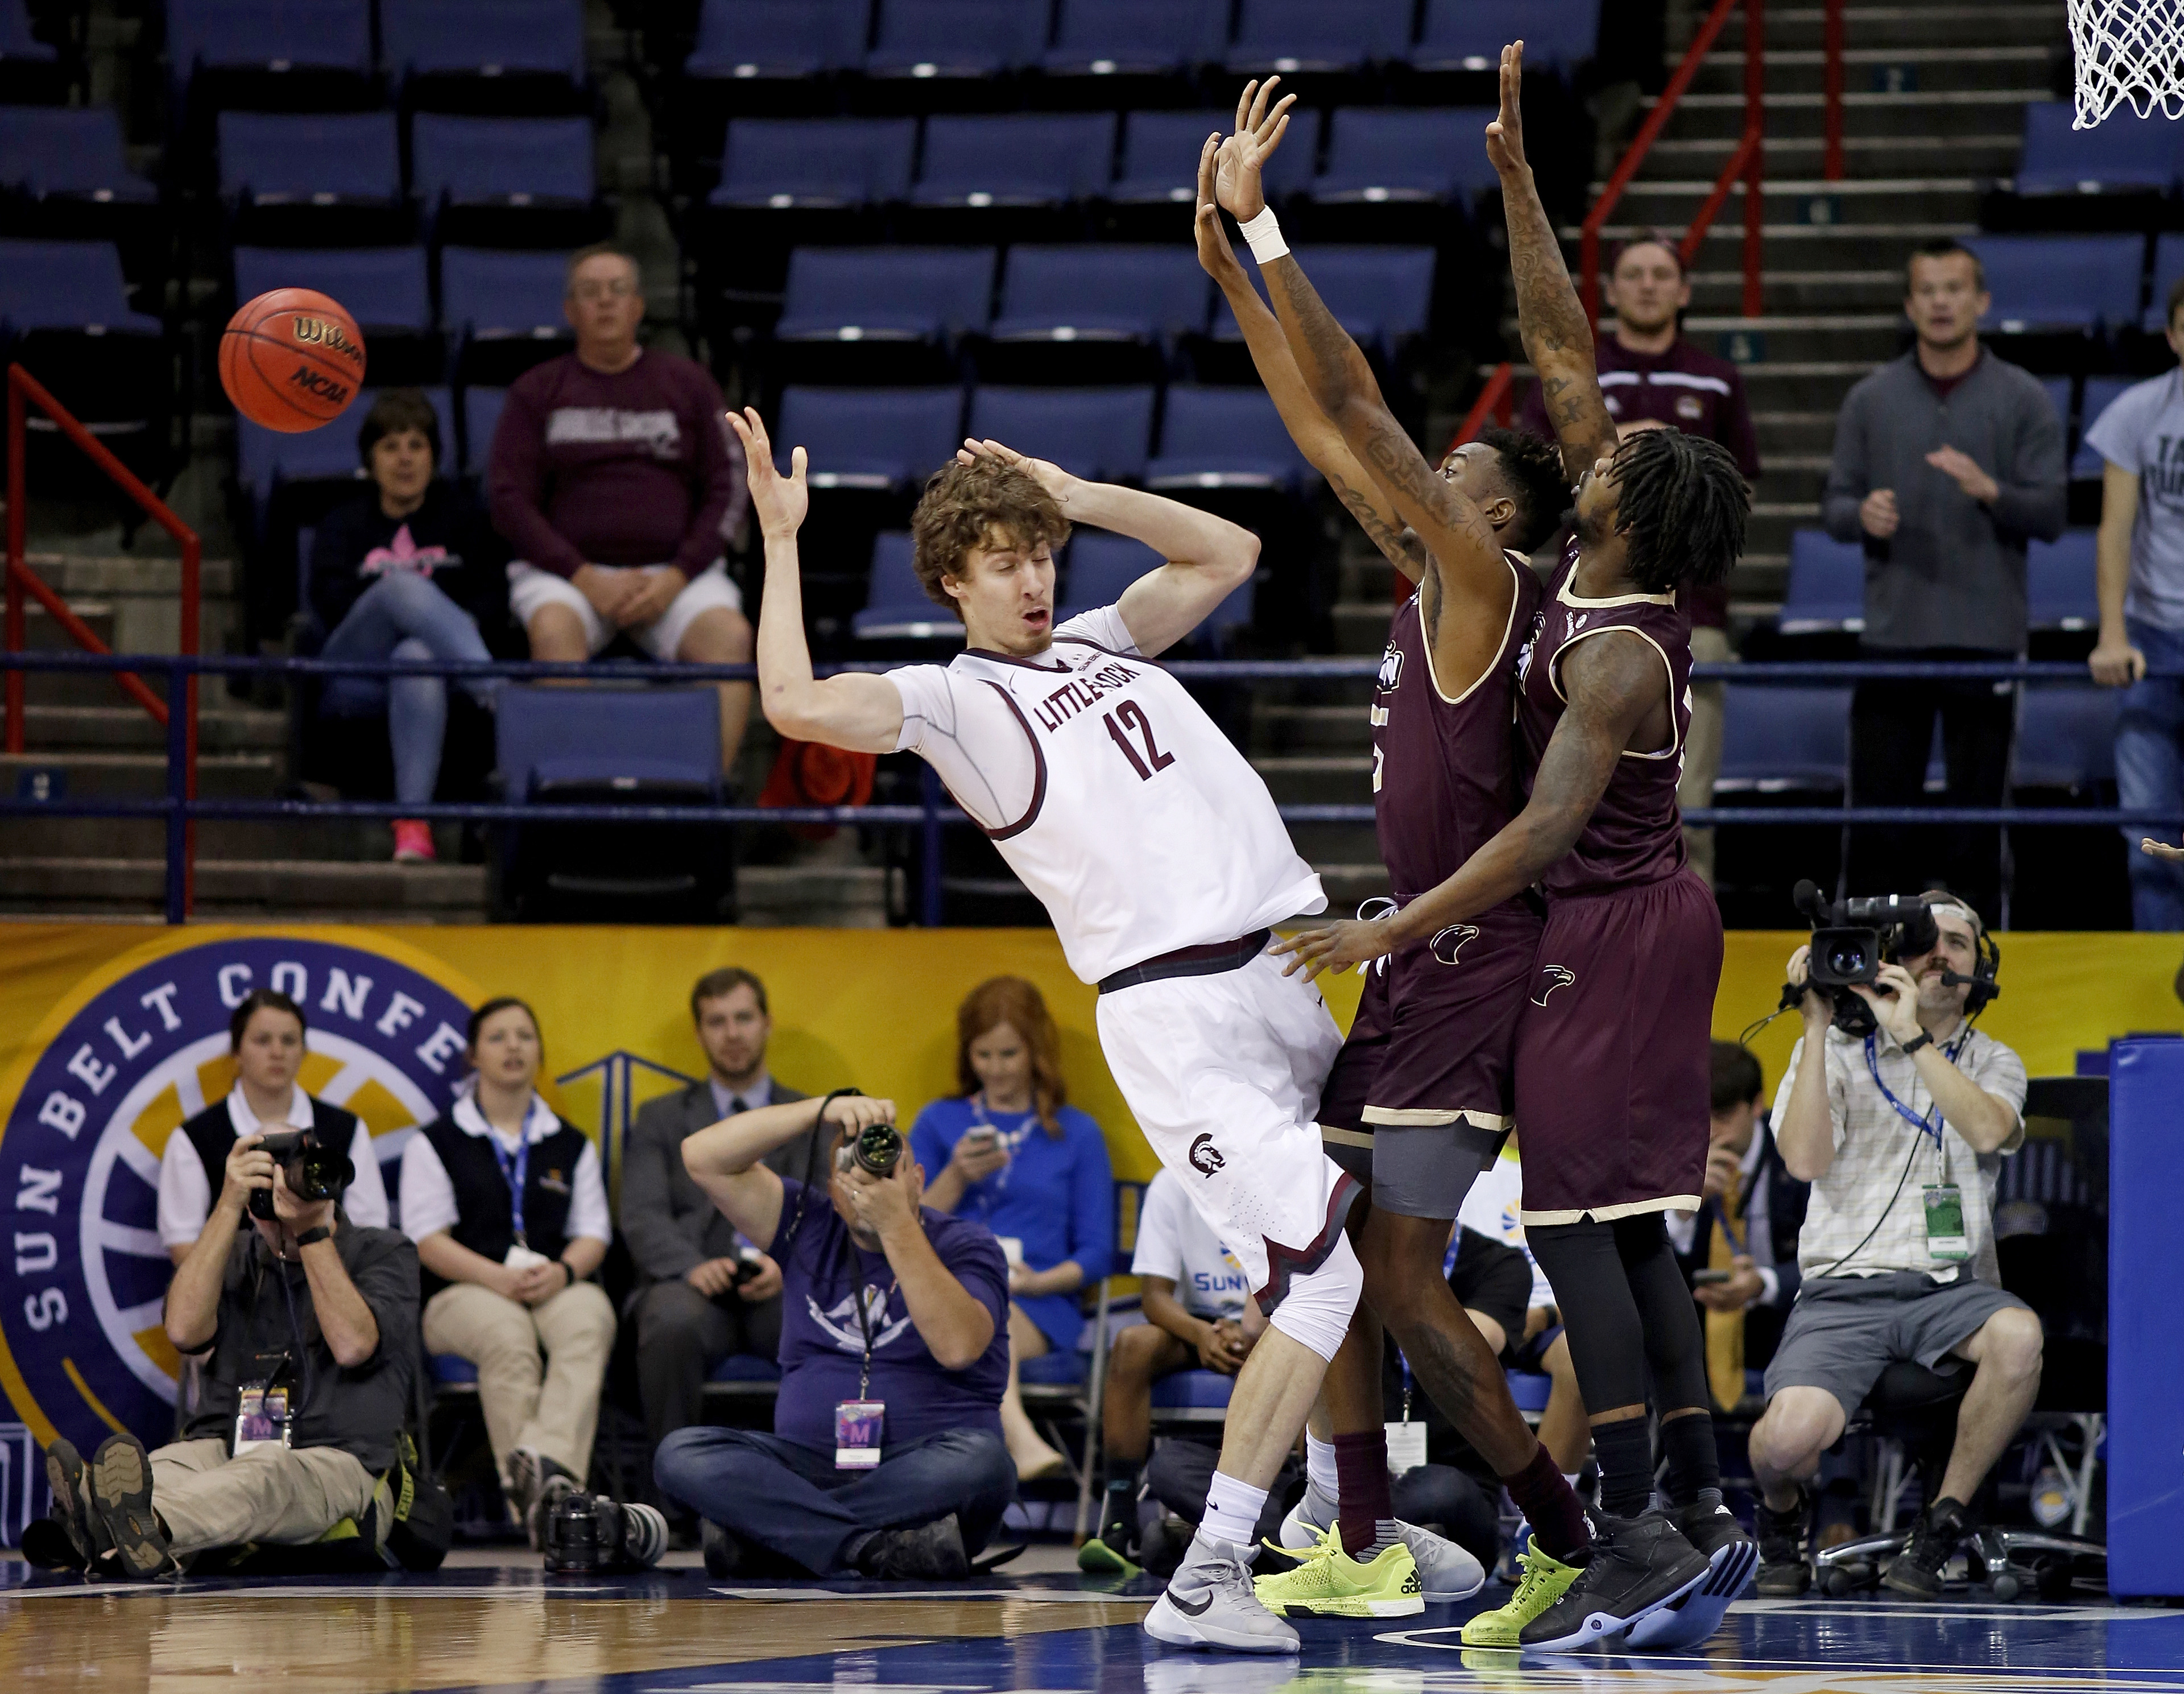 Arkansas Little Rock forward Lis Shoshi (12) loses control of the ball after a block from Louisiana Monroe forward DeMondre Harvey, right, and forward Jamaal Samuel, center, in the first half of an NCAA college basketball game in the championship of the S